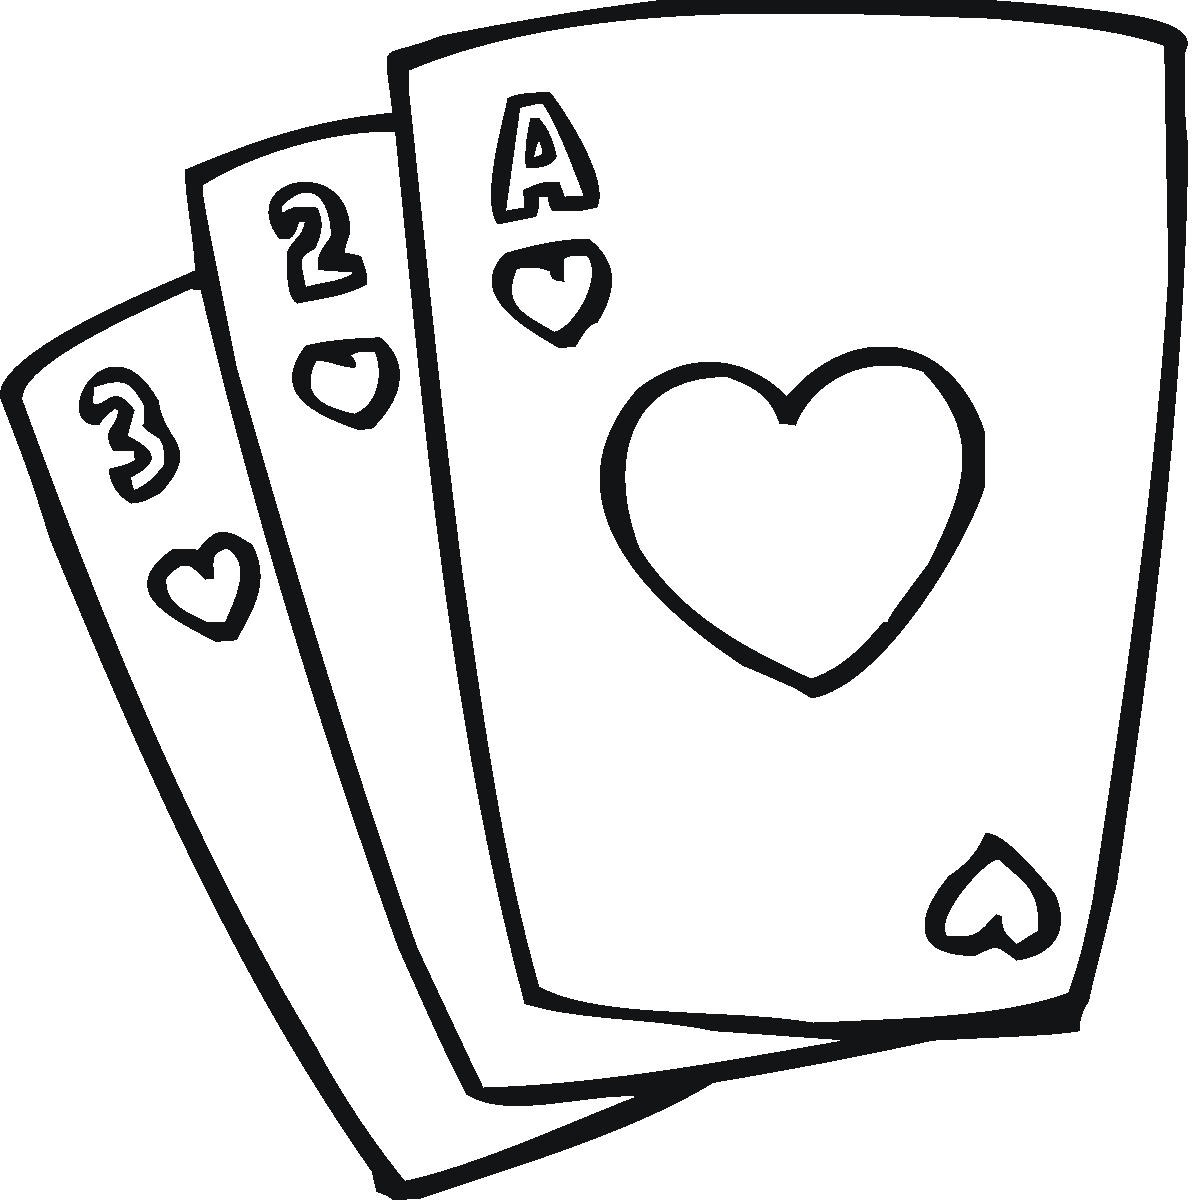 Card playing clipart vector black and white download Free Playing Card Clipart, Download Free Clip Art, Free Clip Art on ... vector black and white download